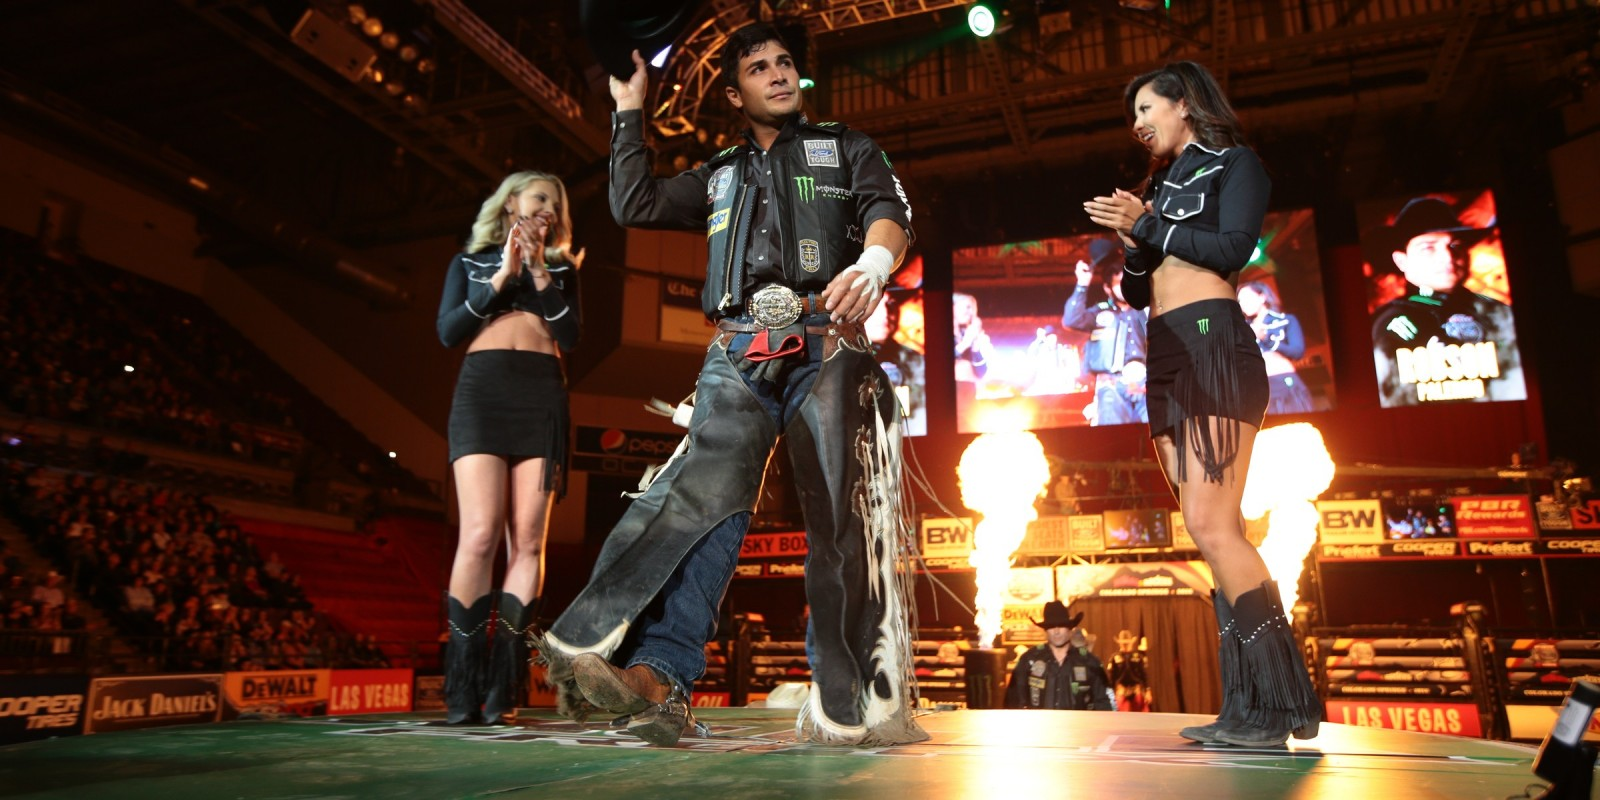 Robson Palermo in the opening during the first round of the Colorado Springs Built Ford Tough Series PBR